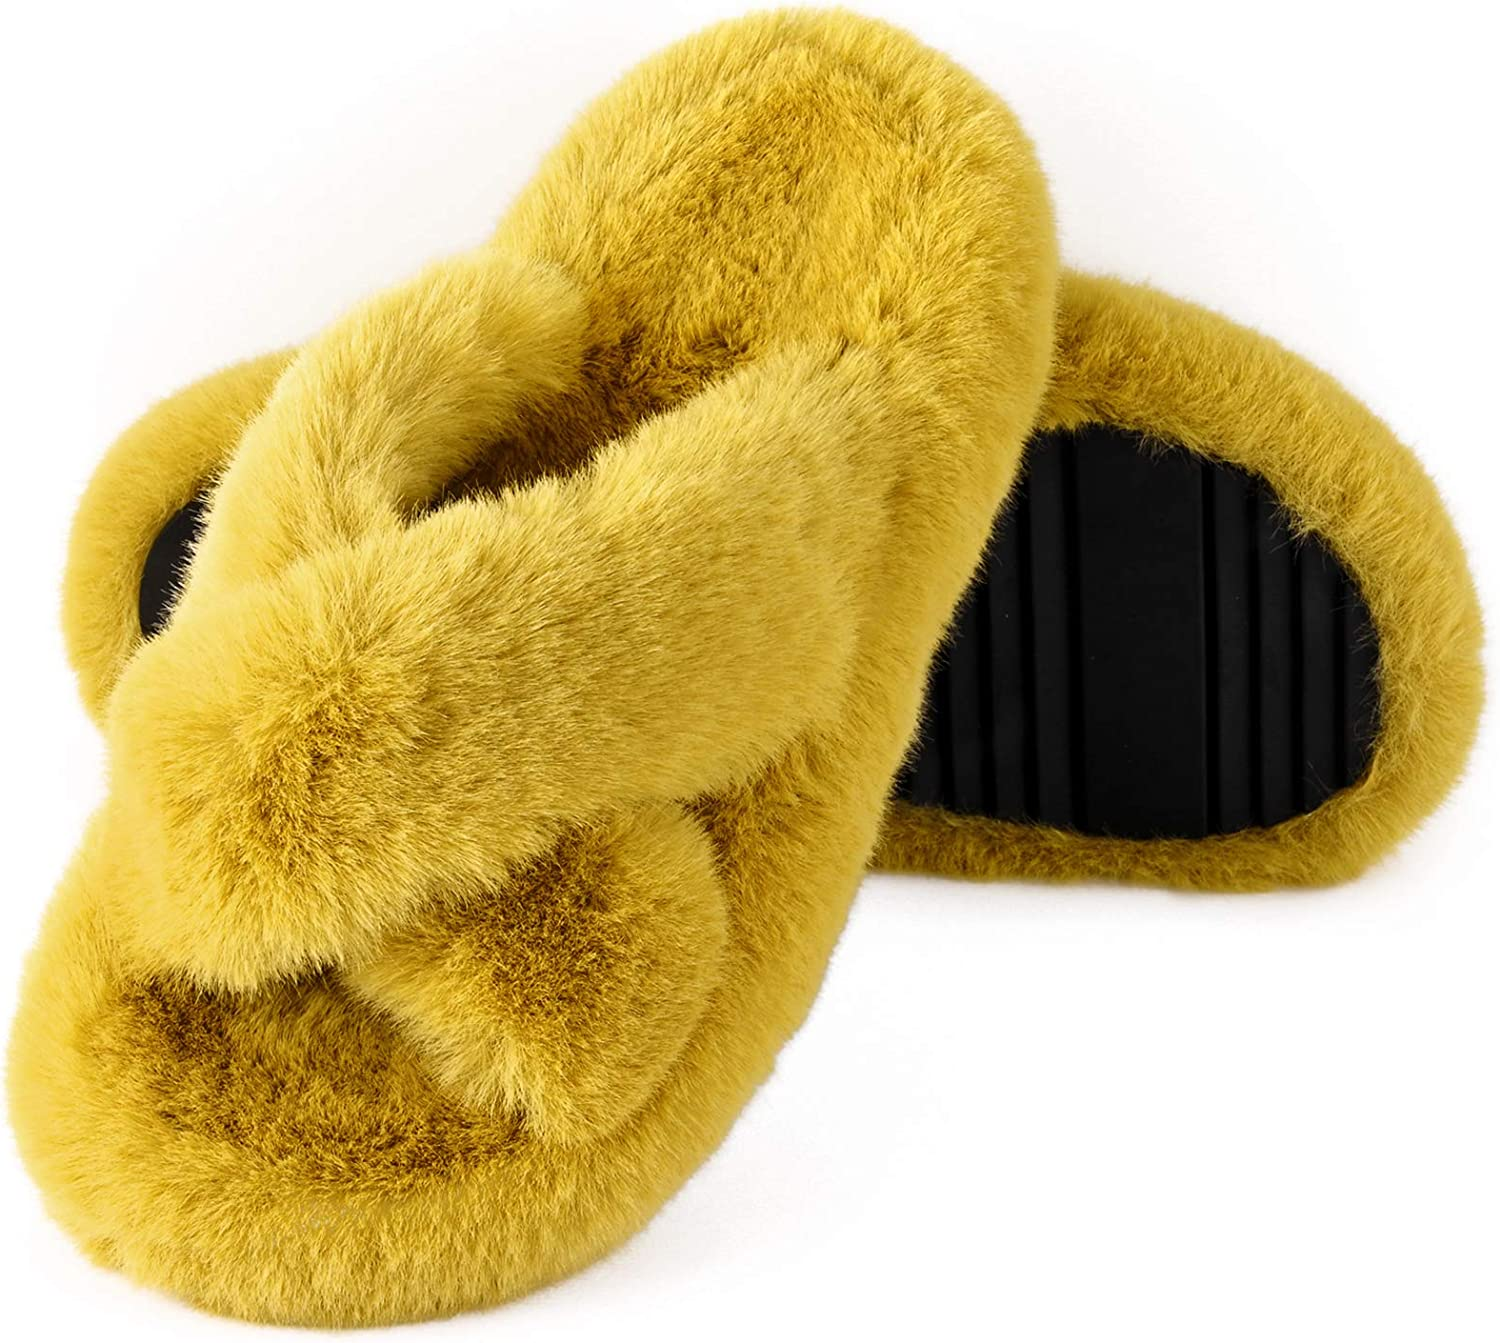 WATMAID Fuzzy Slippers for Women Soft Fluffy House Slippers Open Toe Cross Bands Anti-Skid Plush Furry Slippers Slides for Indoor Outdoor